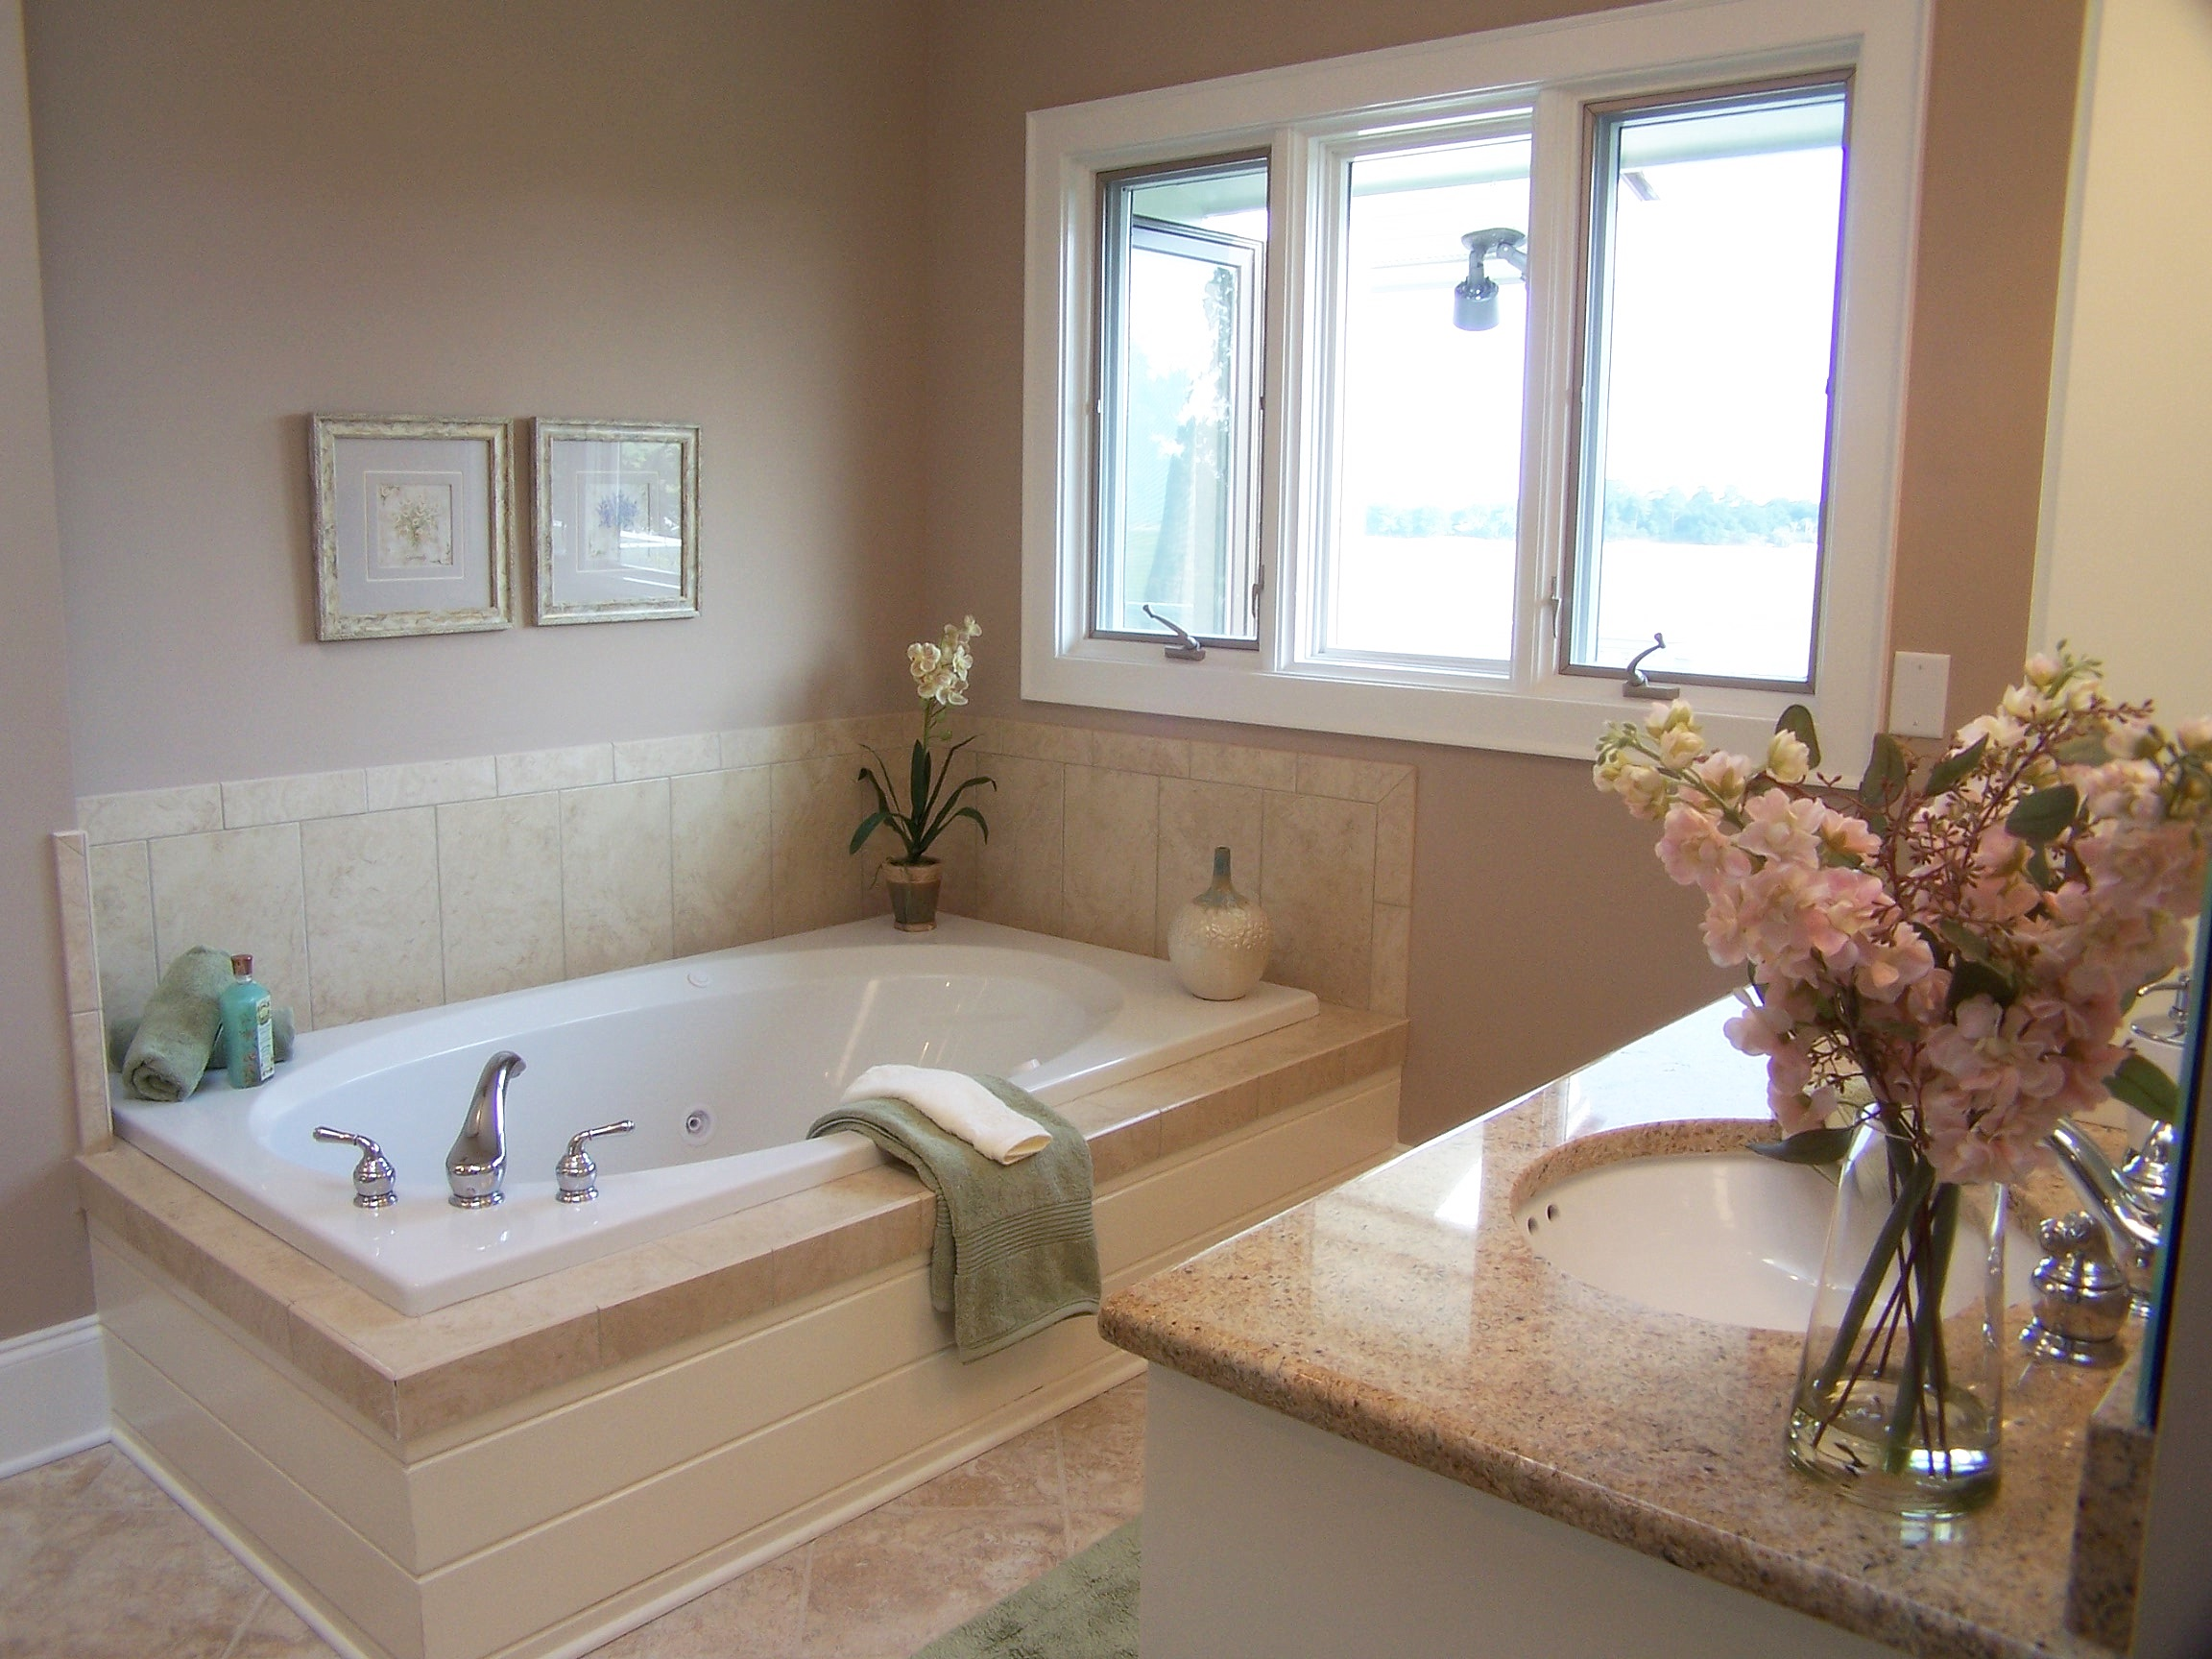 Melissa marro home staging bathrooms rave home staging How to stage a home for sale pictures